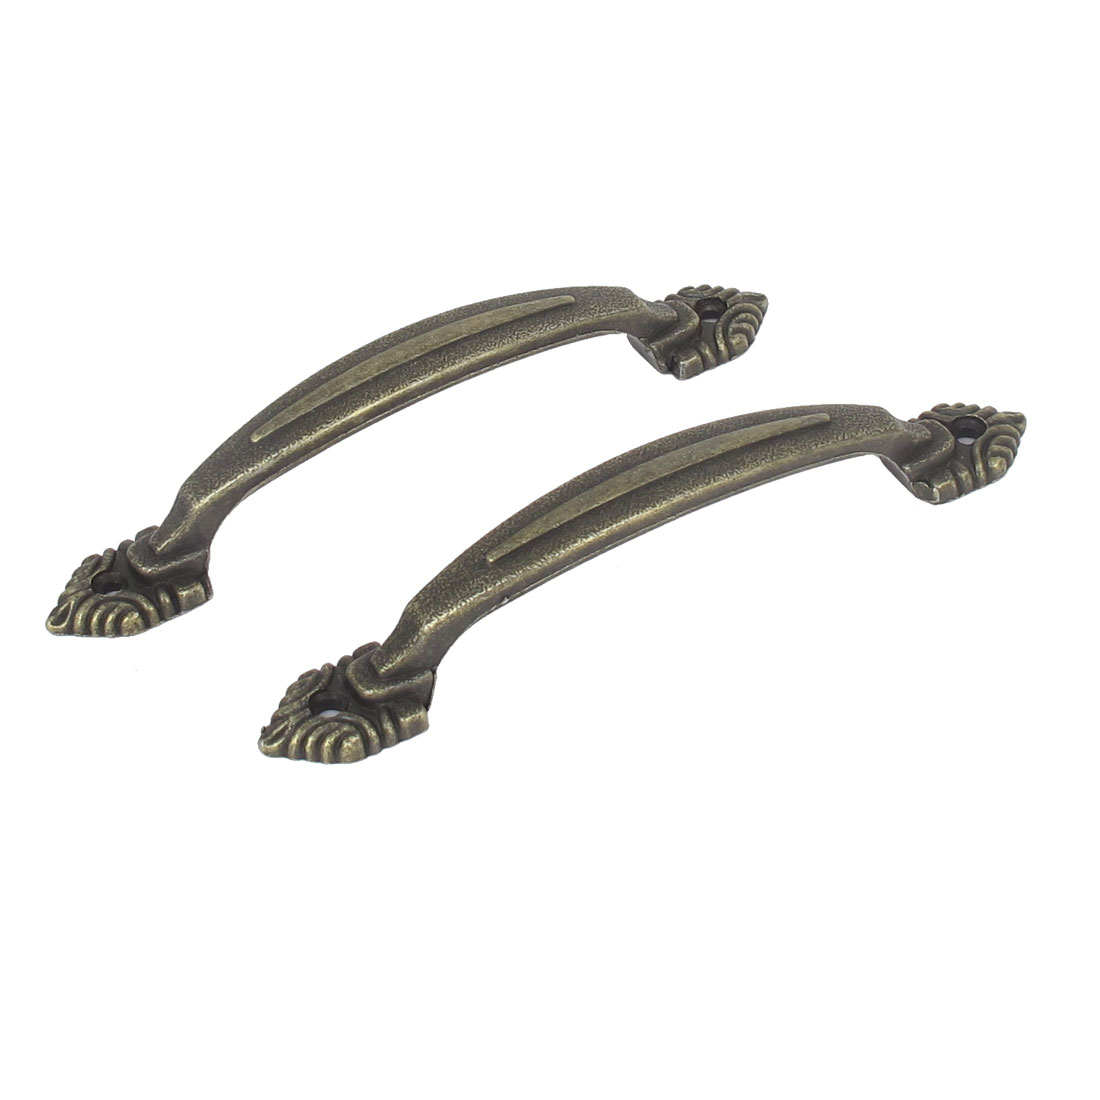 2 Pcs 116mm Metal Embossed Arch Knob Cabinet Door Pulls Handles Hardware